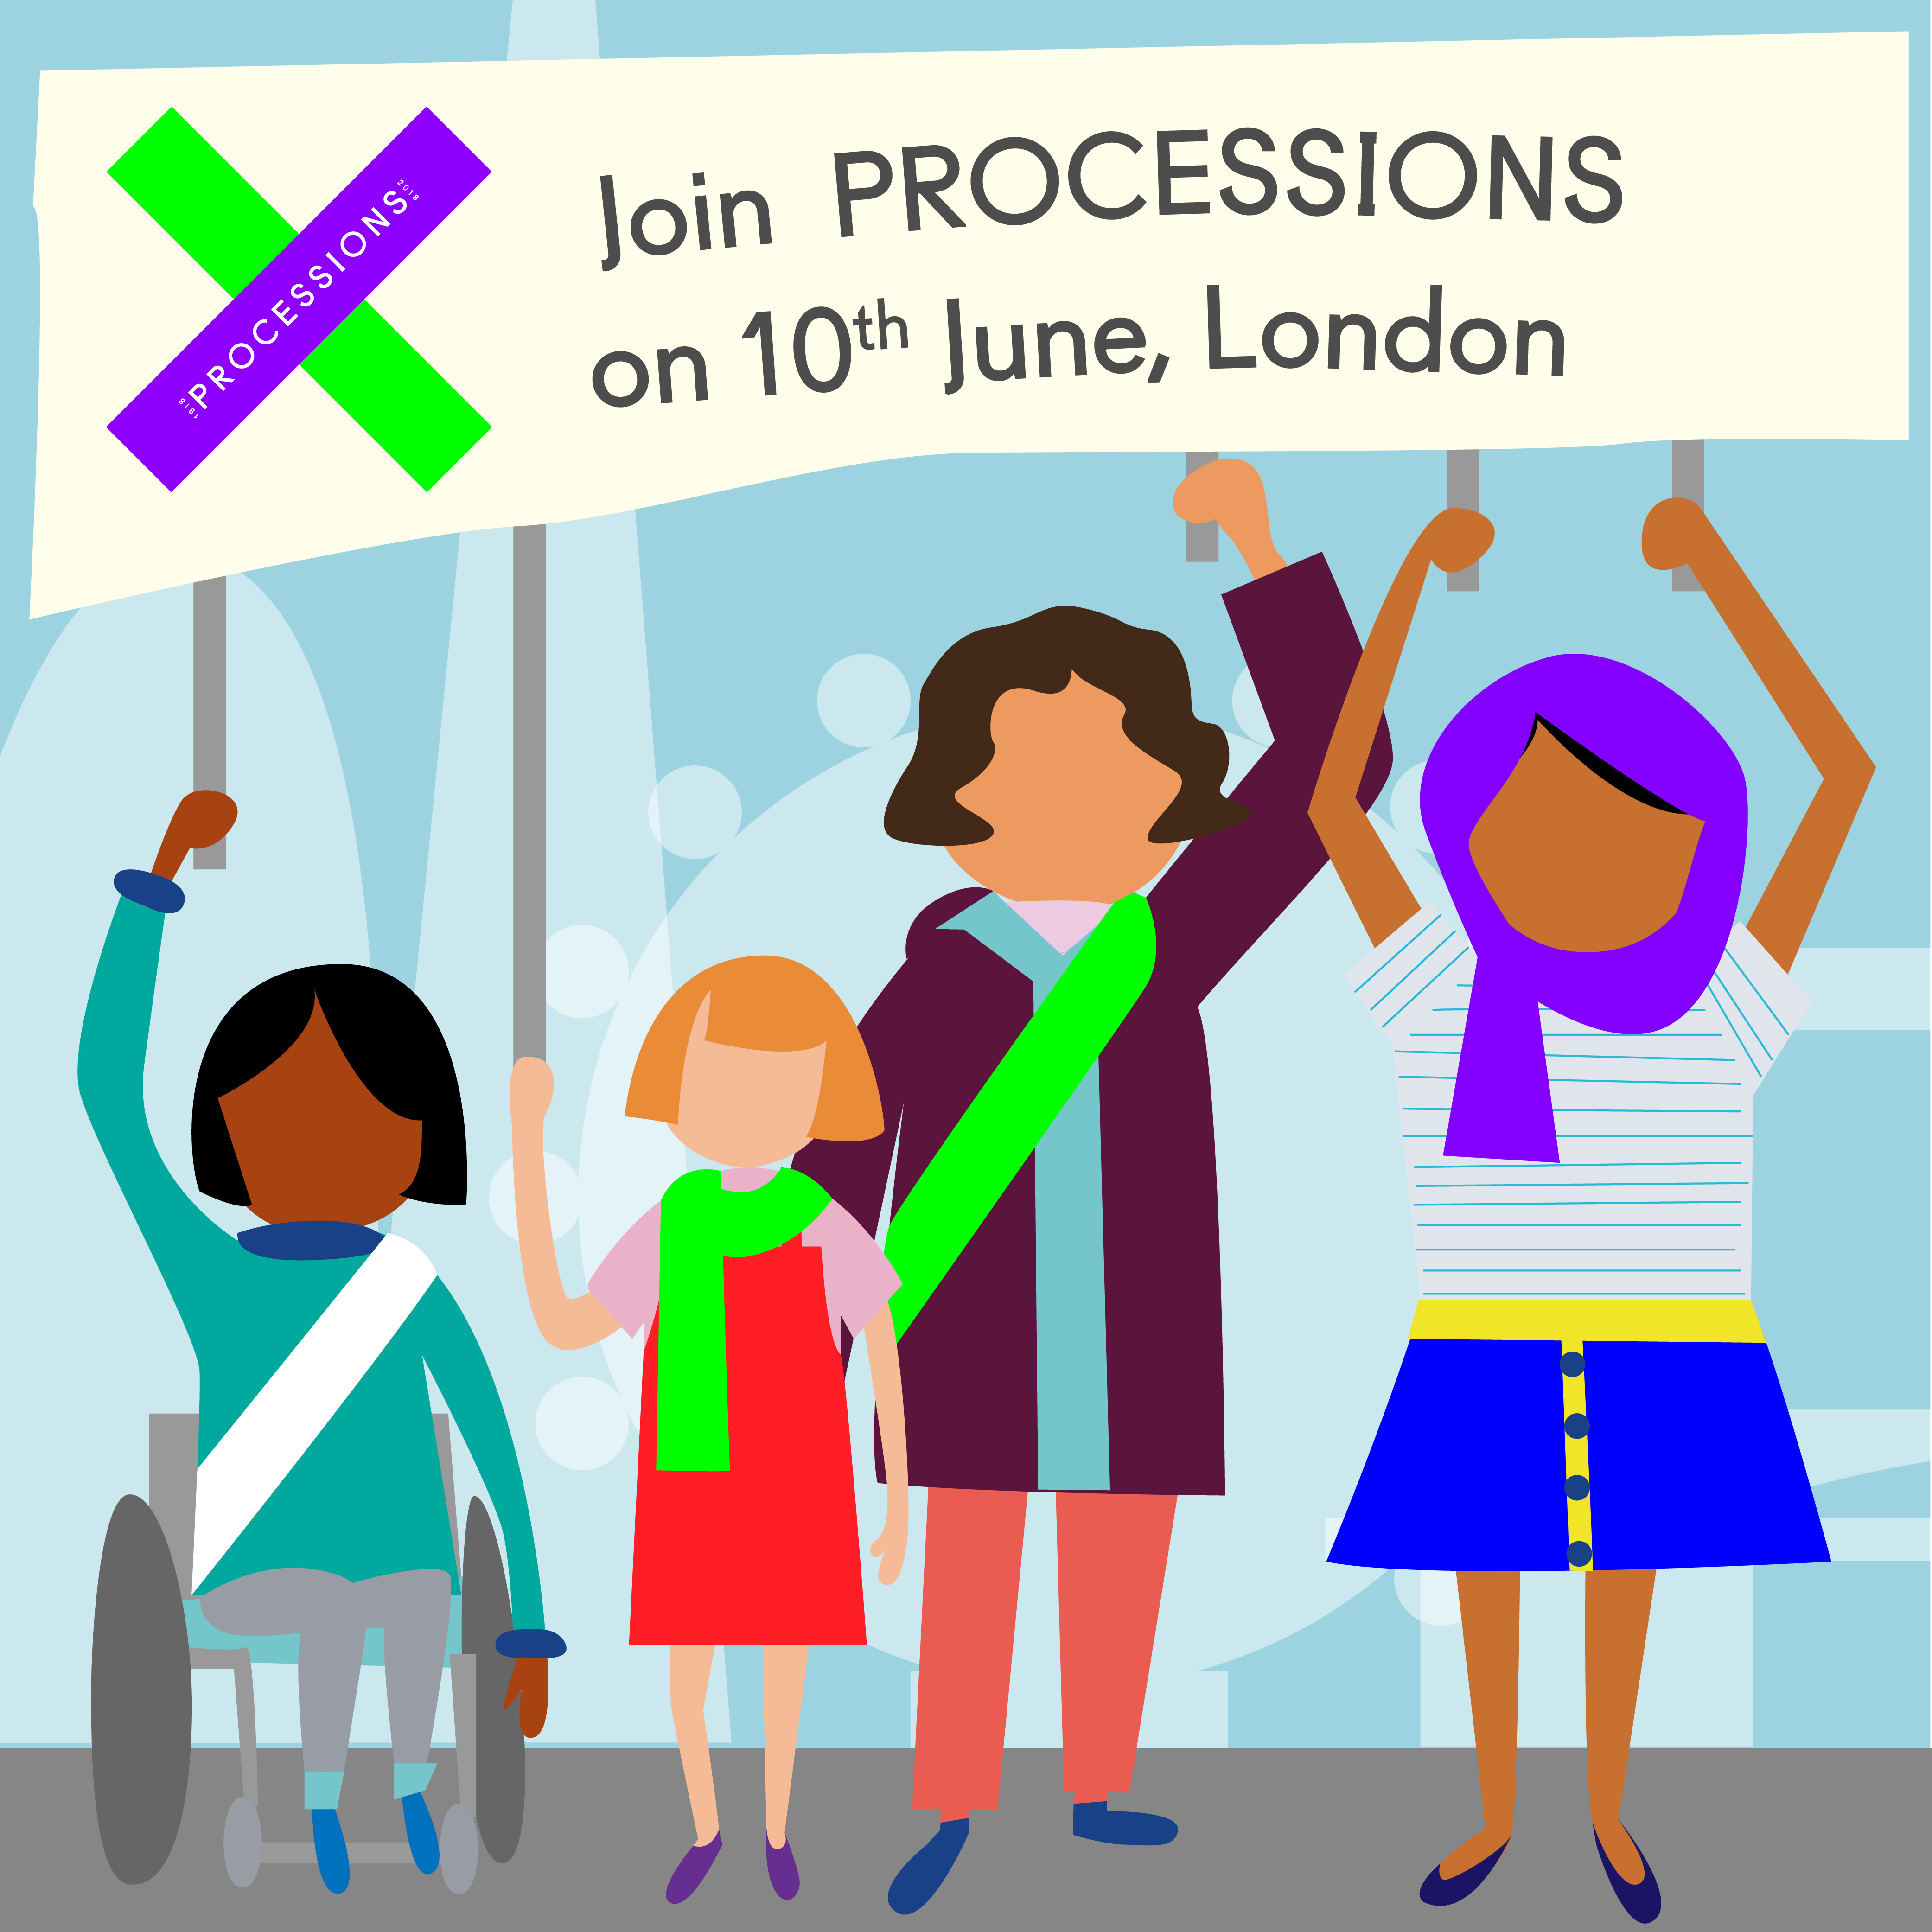 PROCESSIONS: Be a part of History